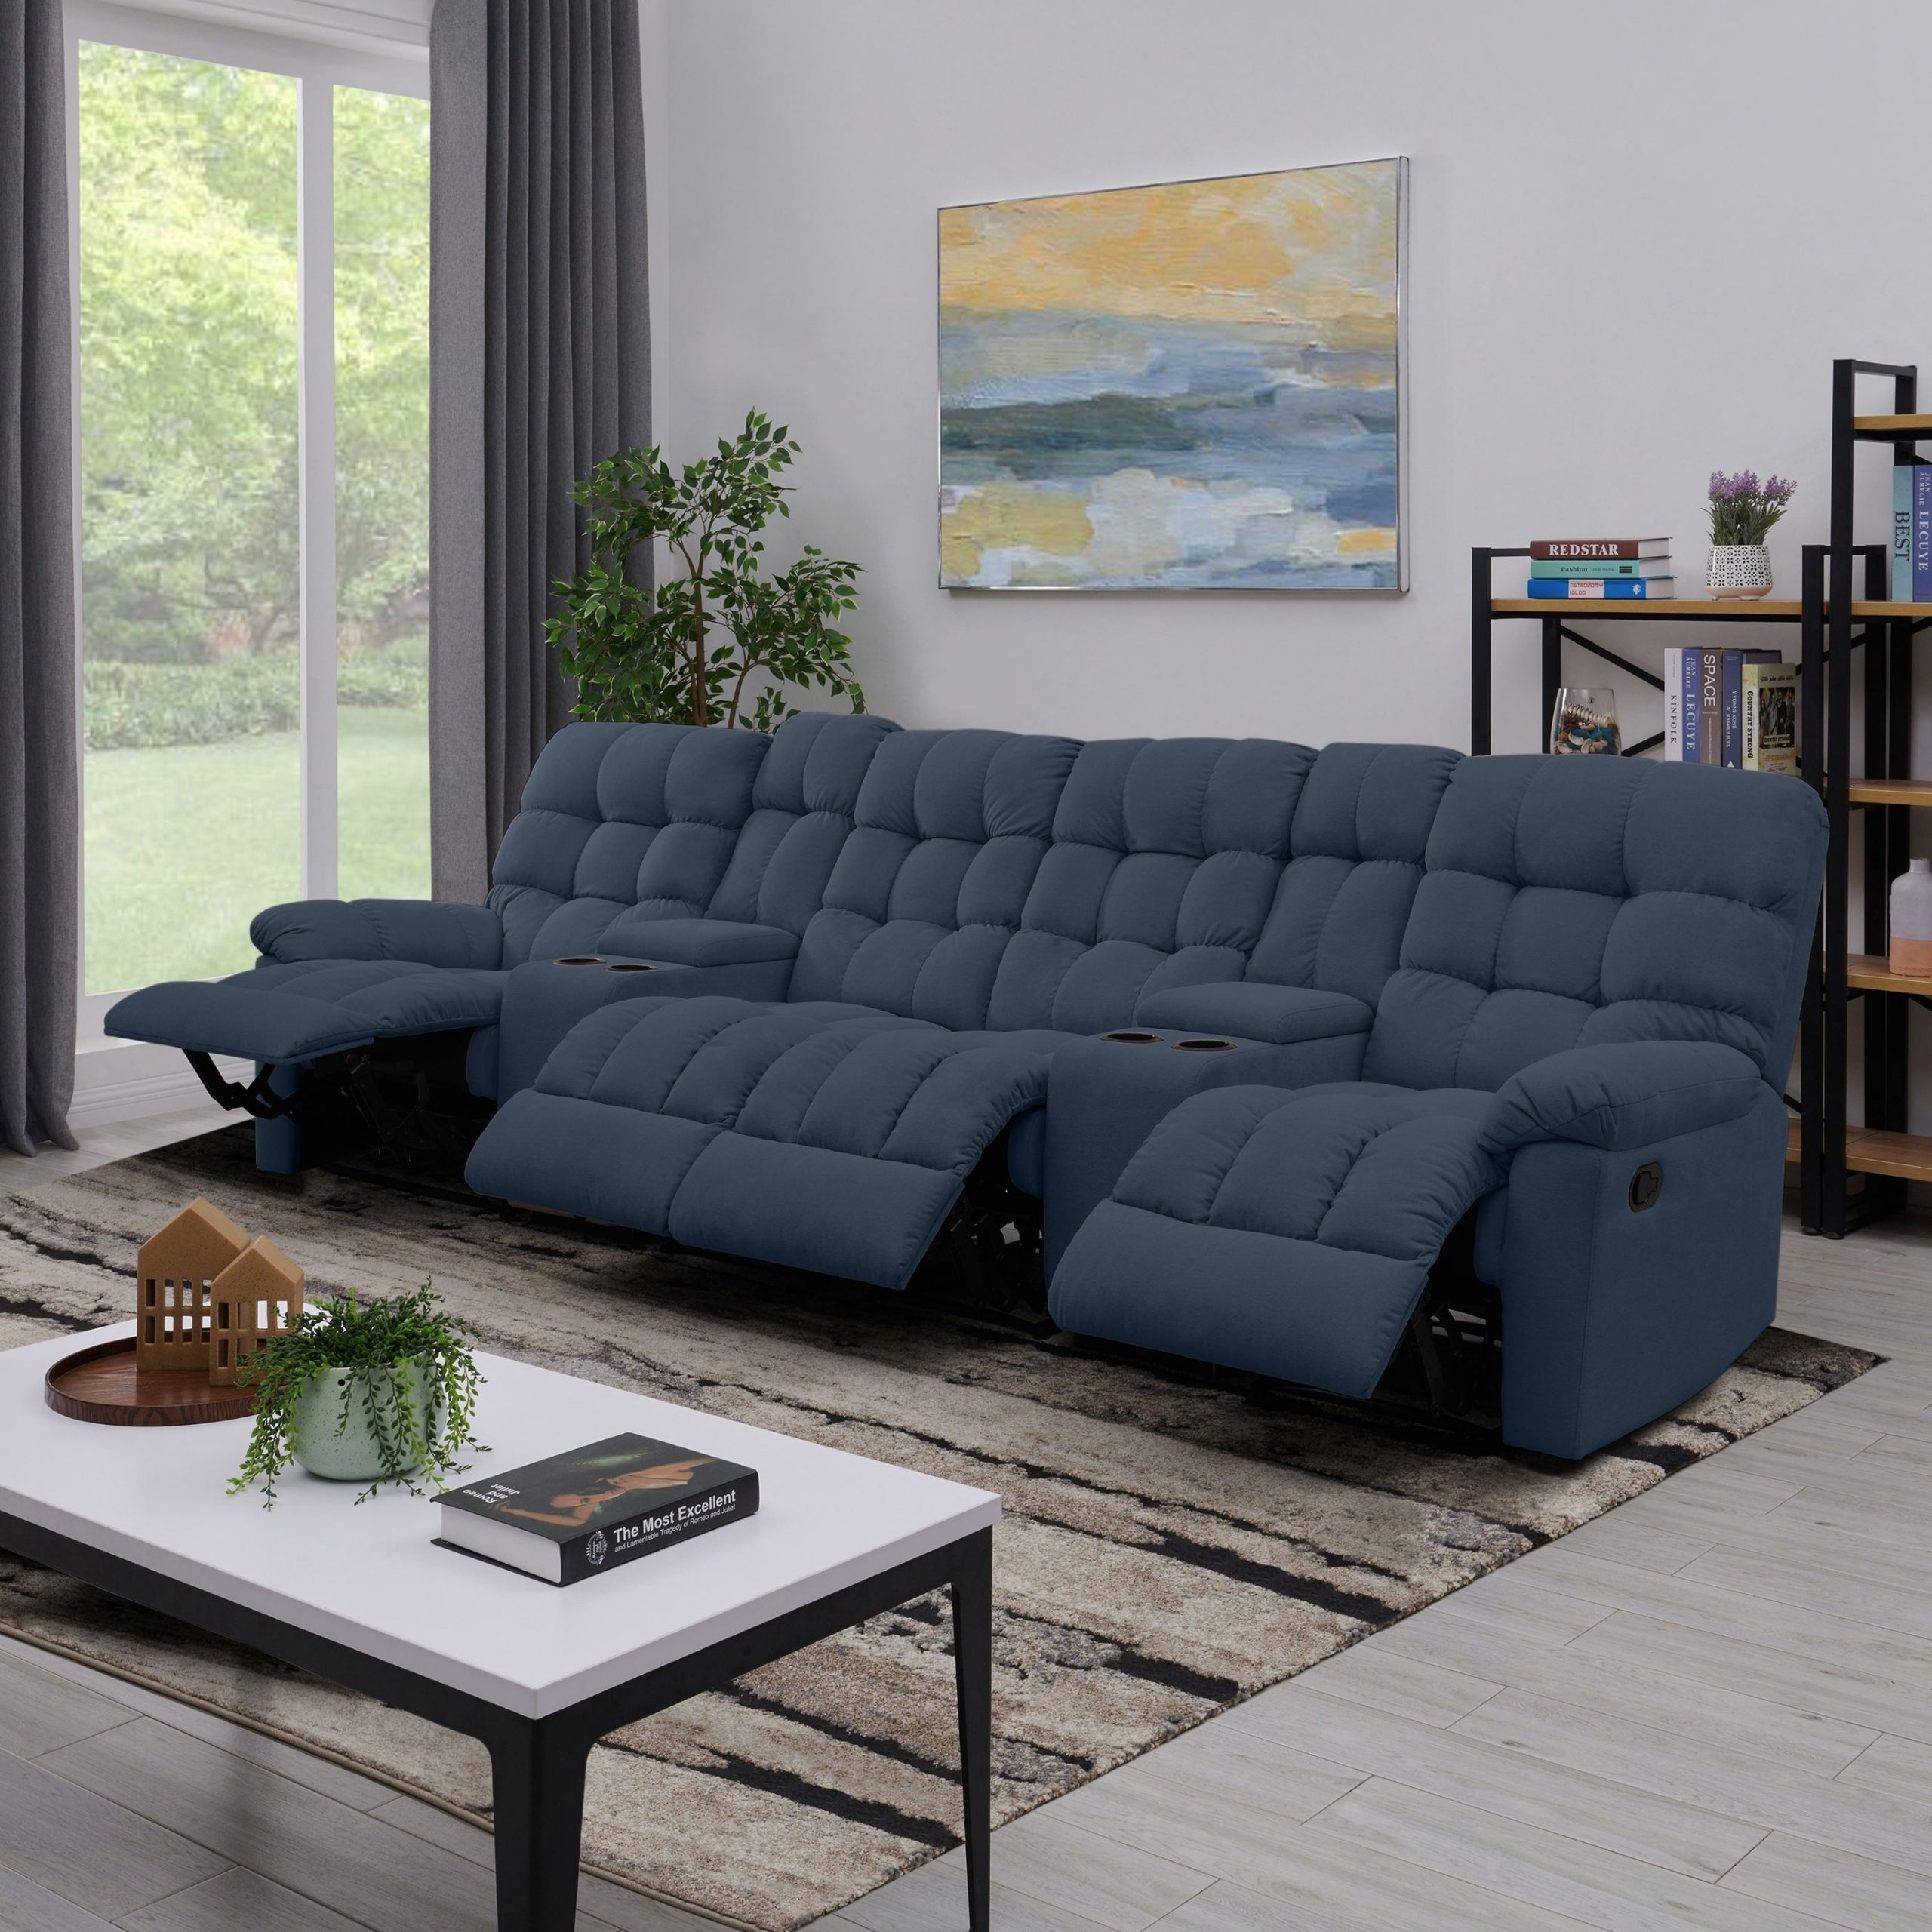 Recliner Sofa With Console Prolounger 3 Seat Recliner Sofa In Lannister Reclining Sofas (View 5 of 7)